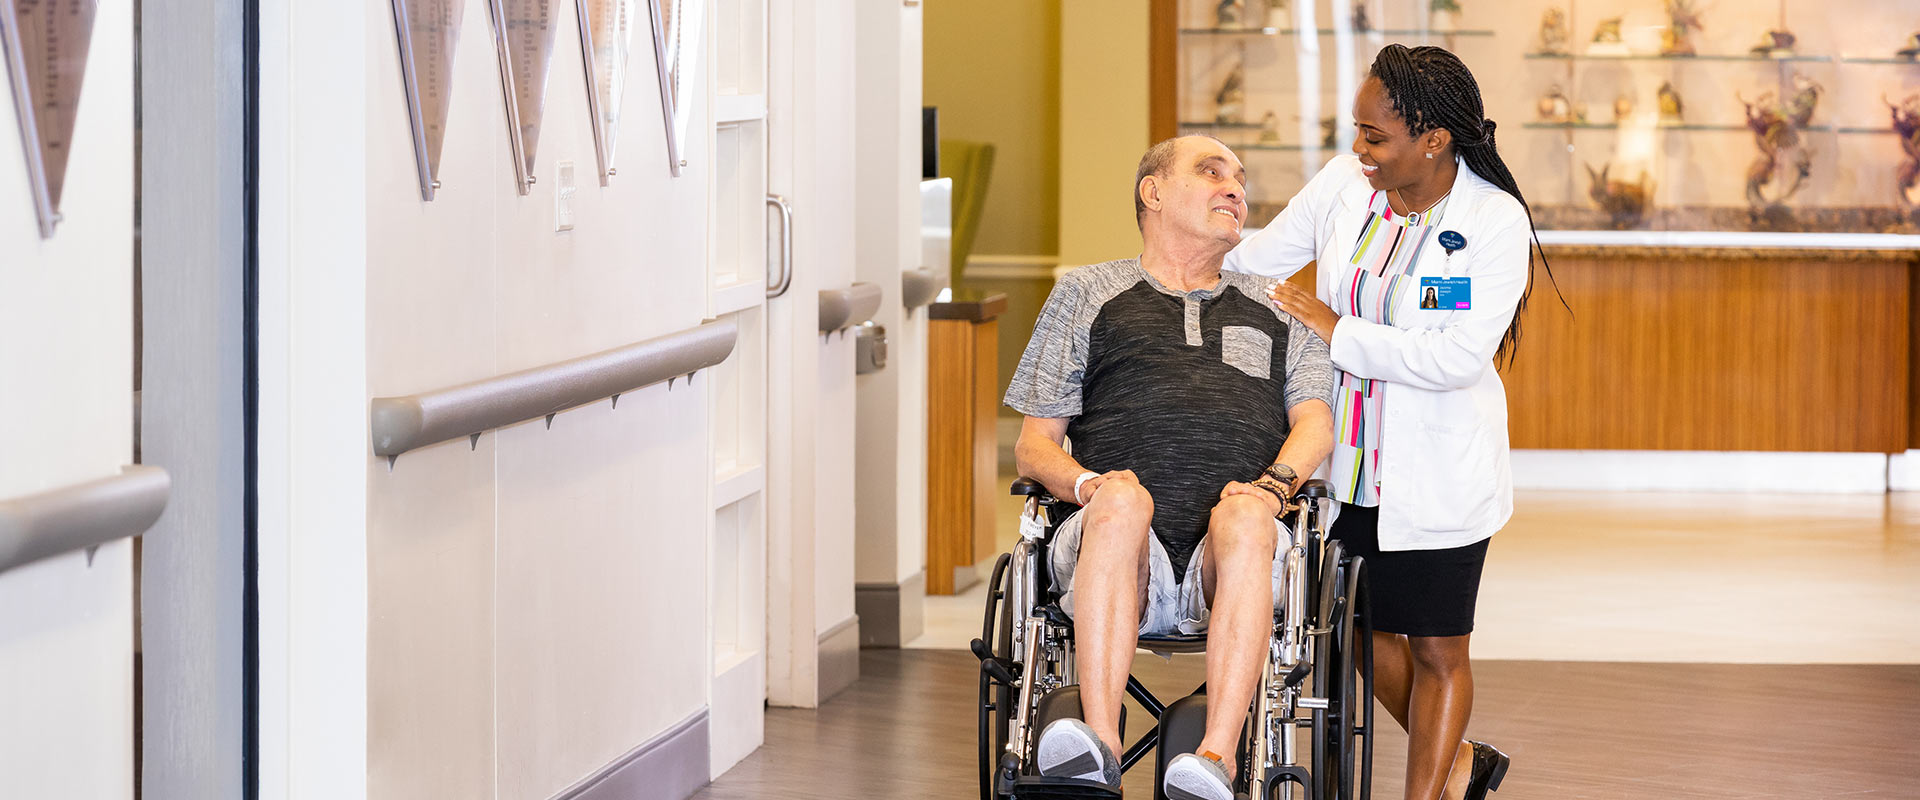 Man in wheelchair smiling at Nurse